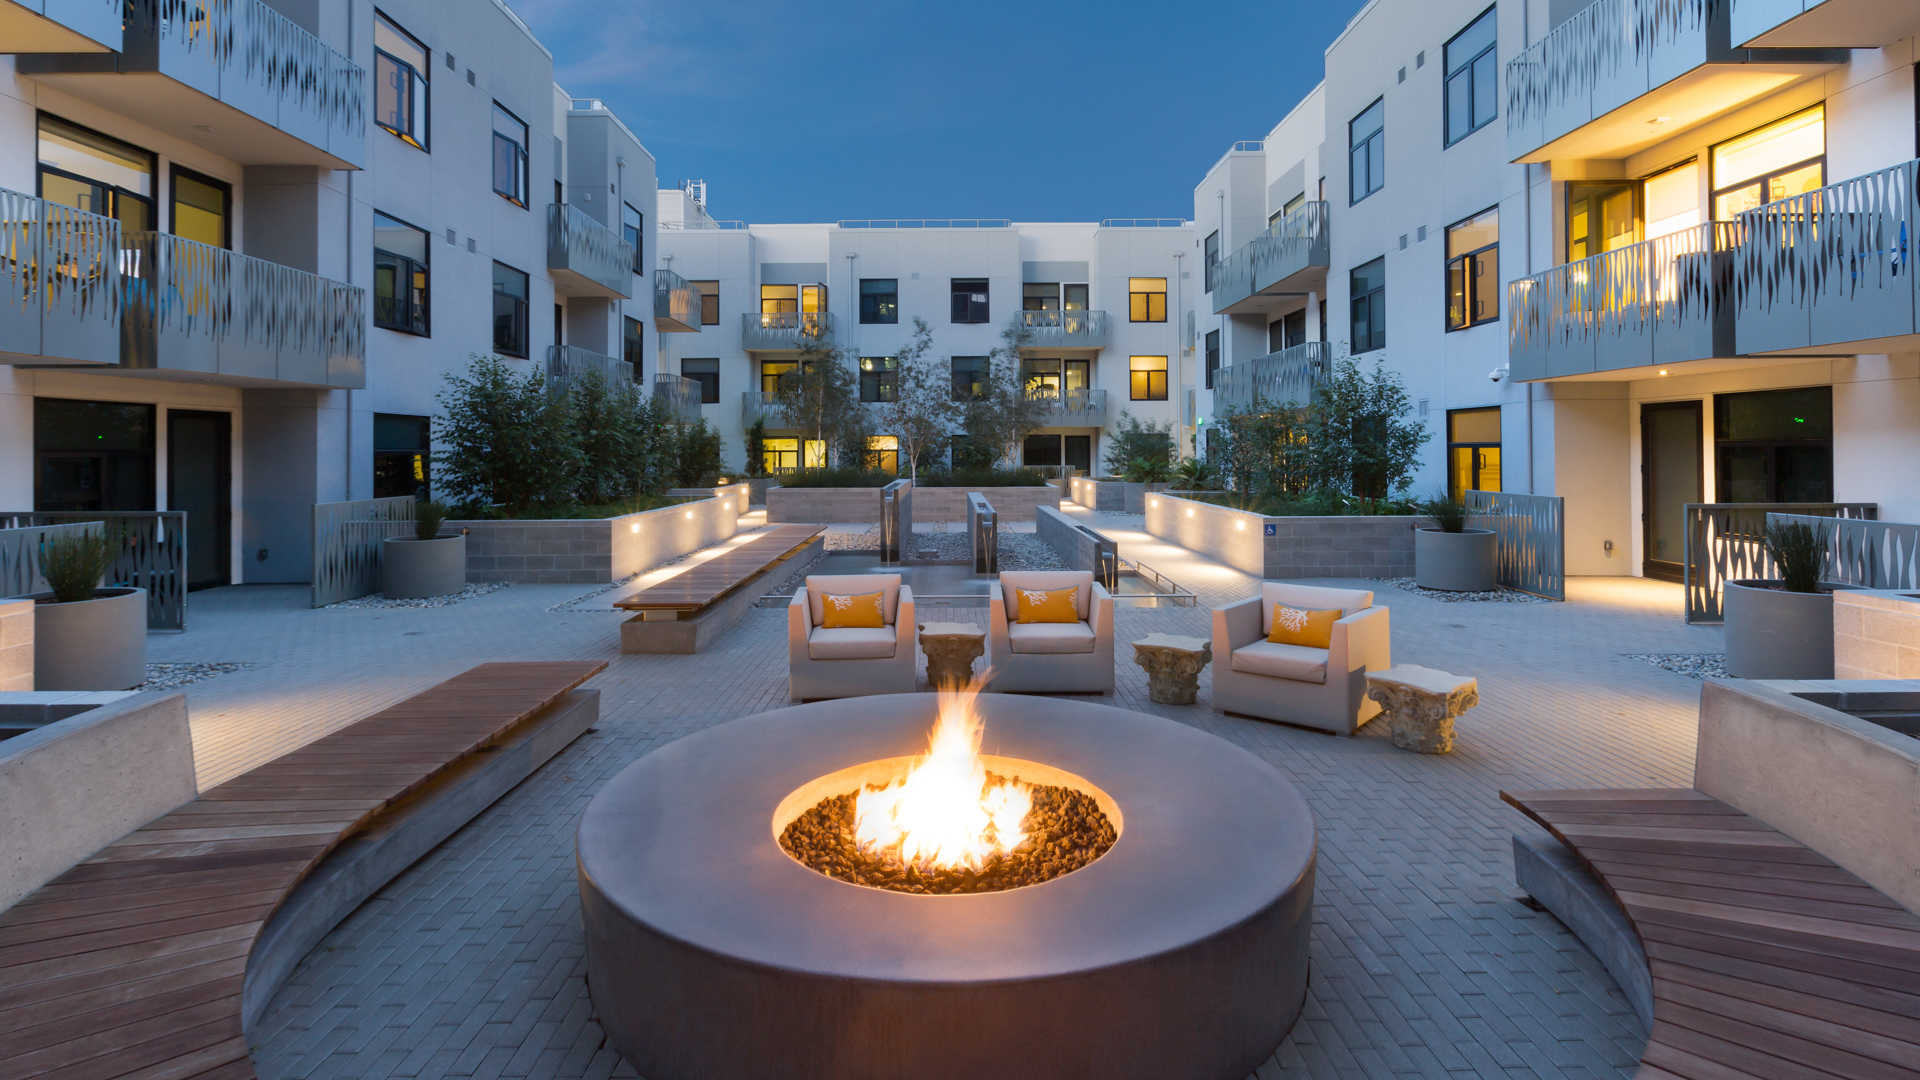 Courtyard and Fire Pit